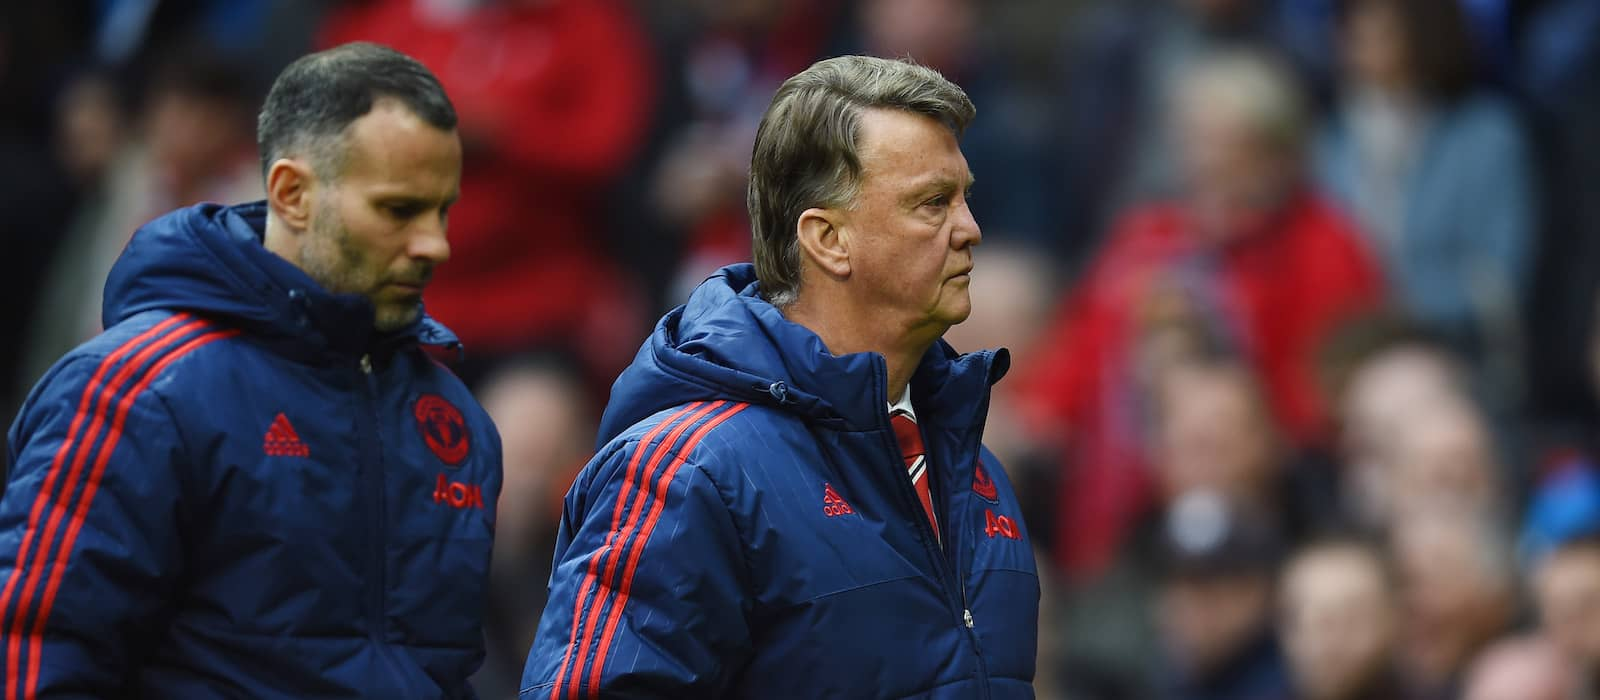 Norwich City vs Man United: Van Gaal's press conference round-up